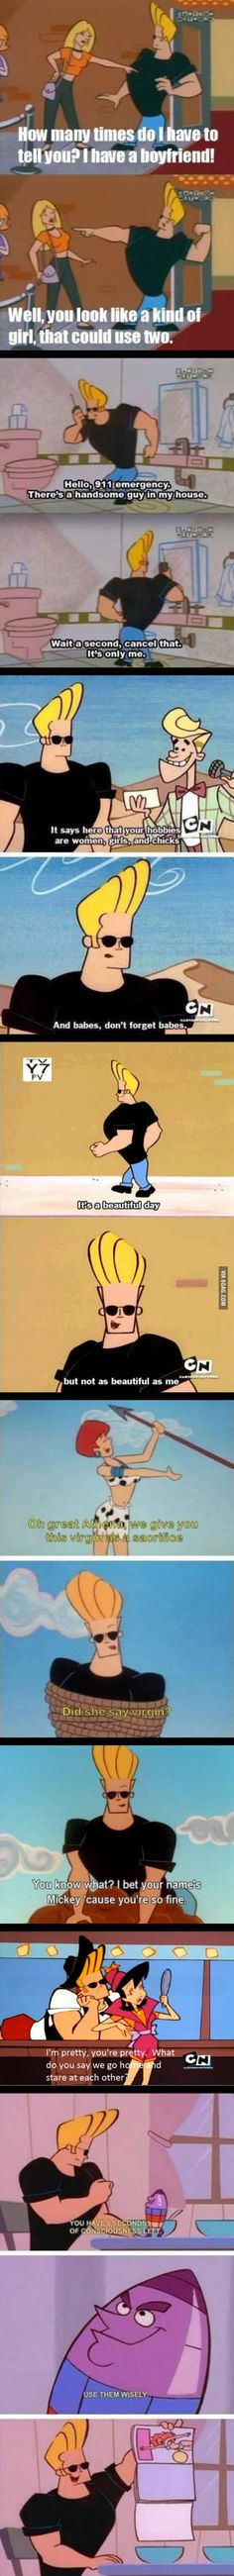 Johny Bravo is the best